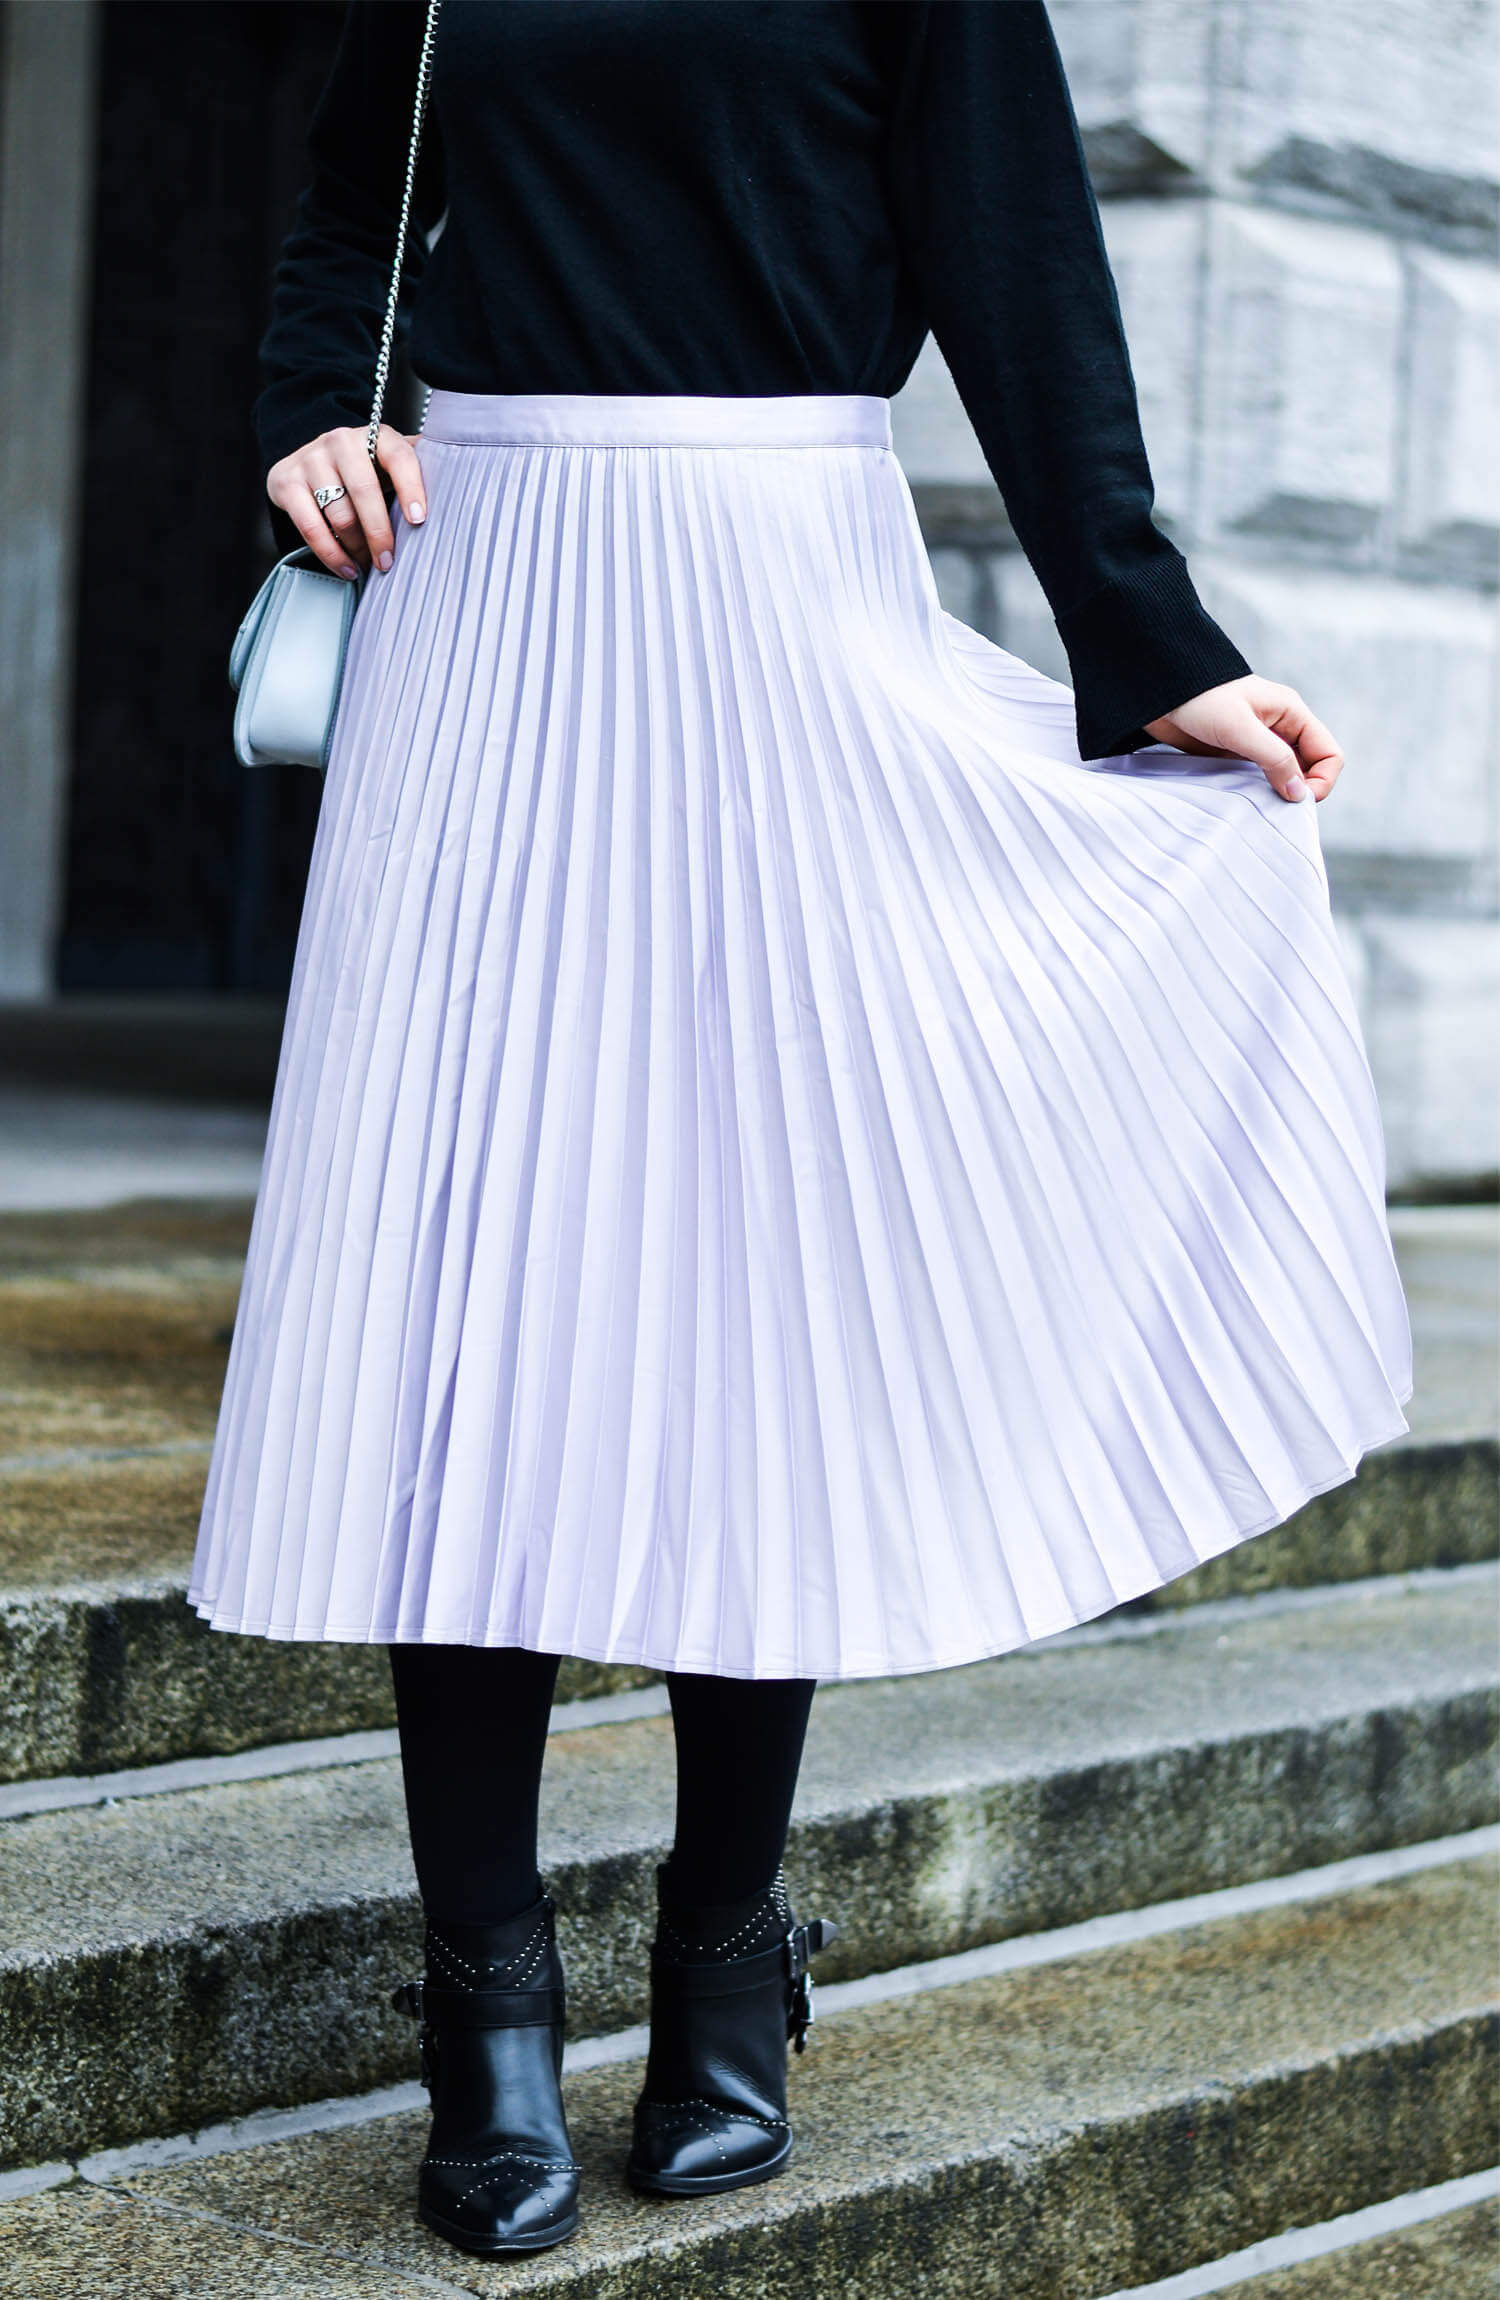 Kationette-Fashionblog-nrw-Engagement-Outfit-Metallic-Pleated-Skirt-Knit-Chanel-Brooch